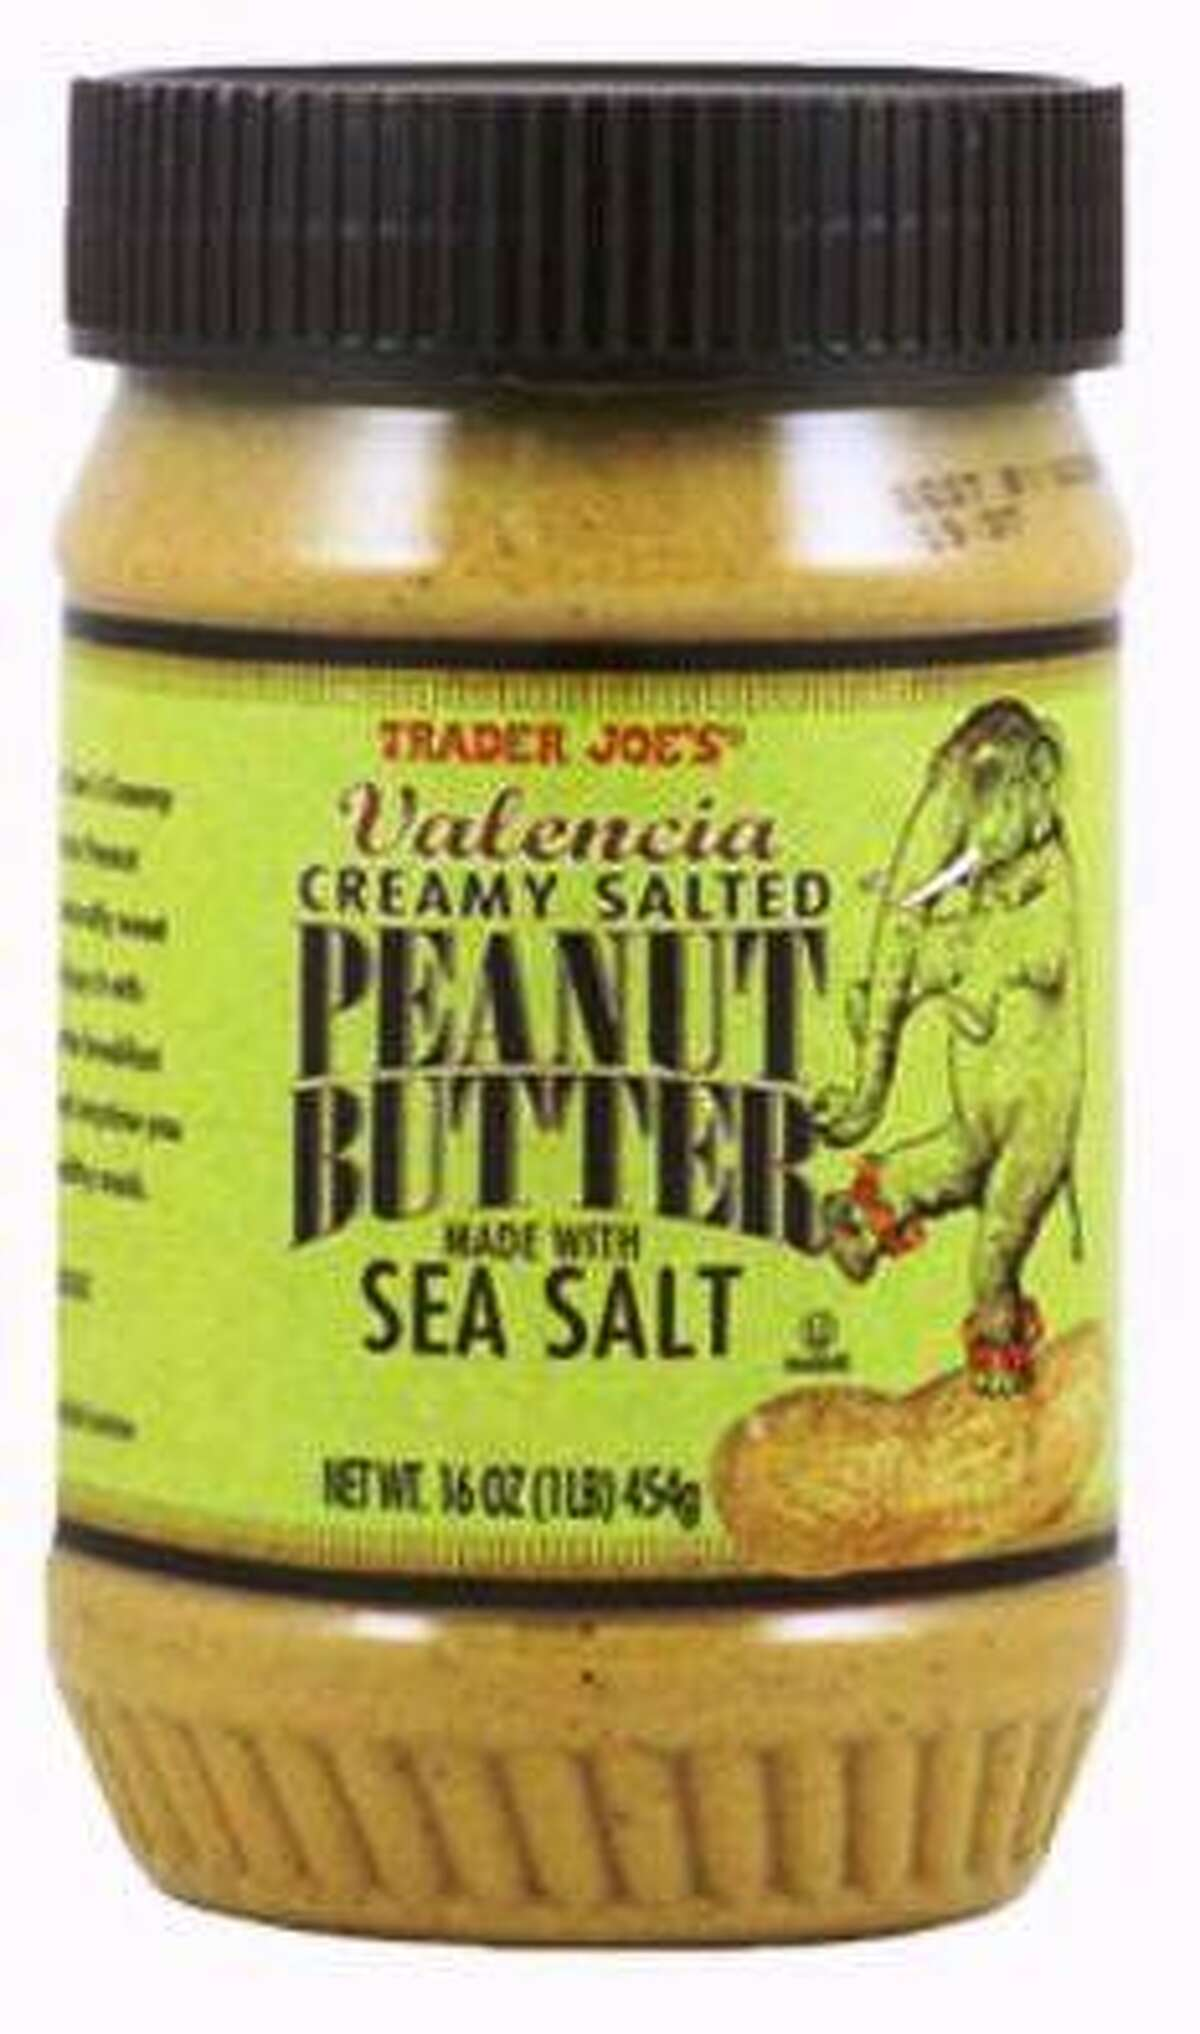 This peanut butter has been recalled by Trader Joe's because of a link to salmonella.